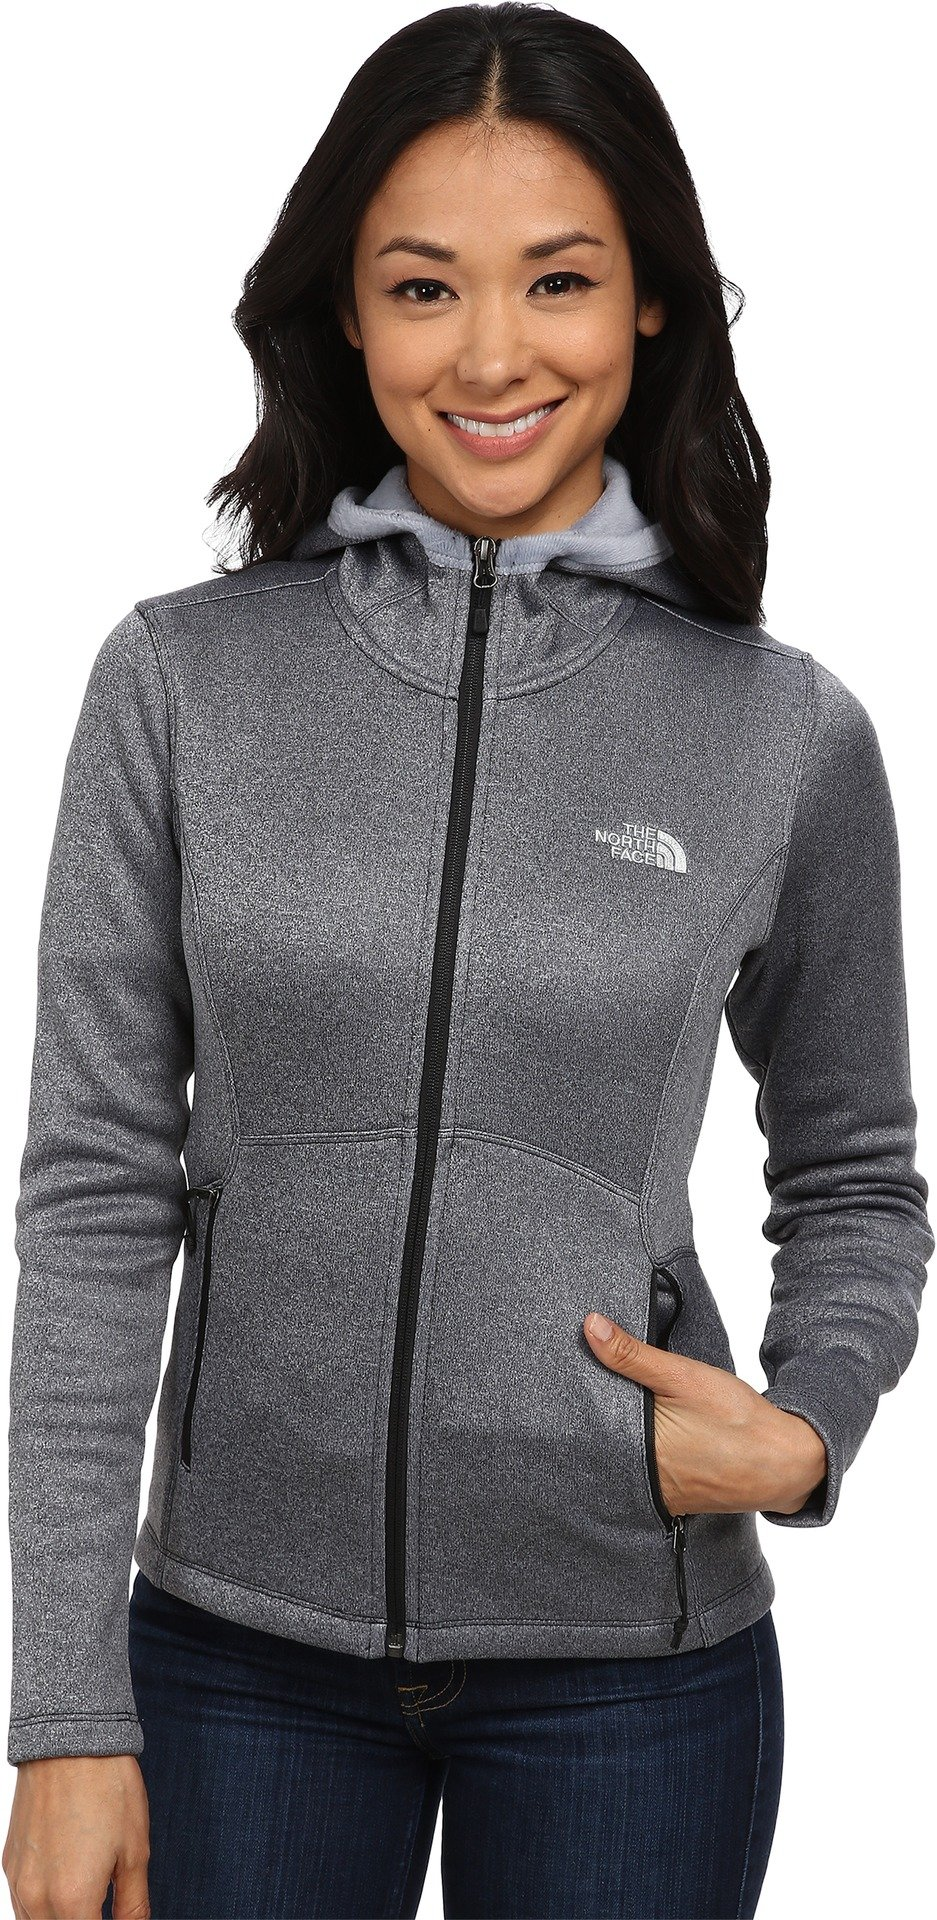 The North Face Women's Agave Hoodie TNF Black Heather (Prior Season) Small